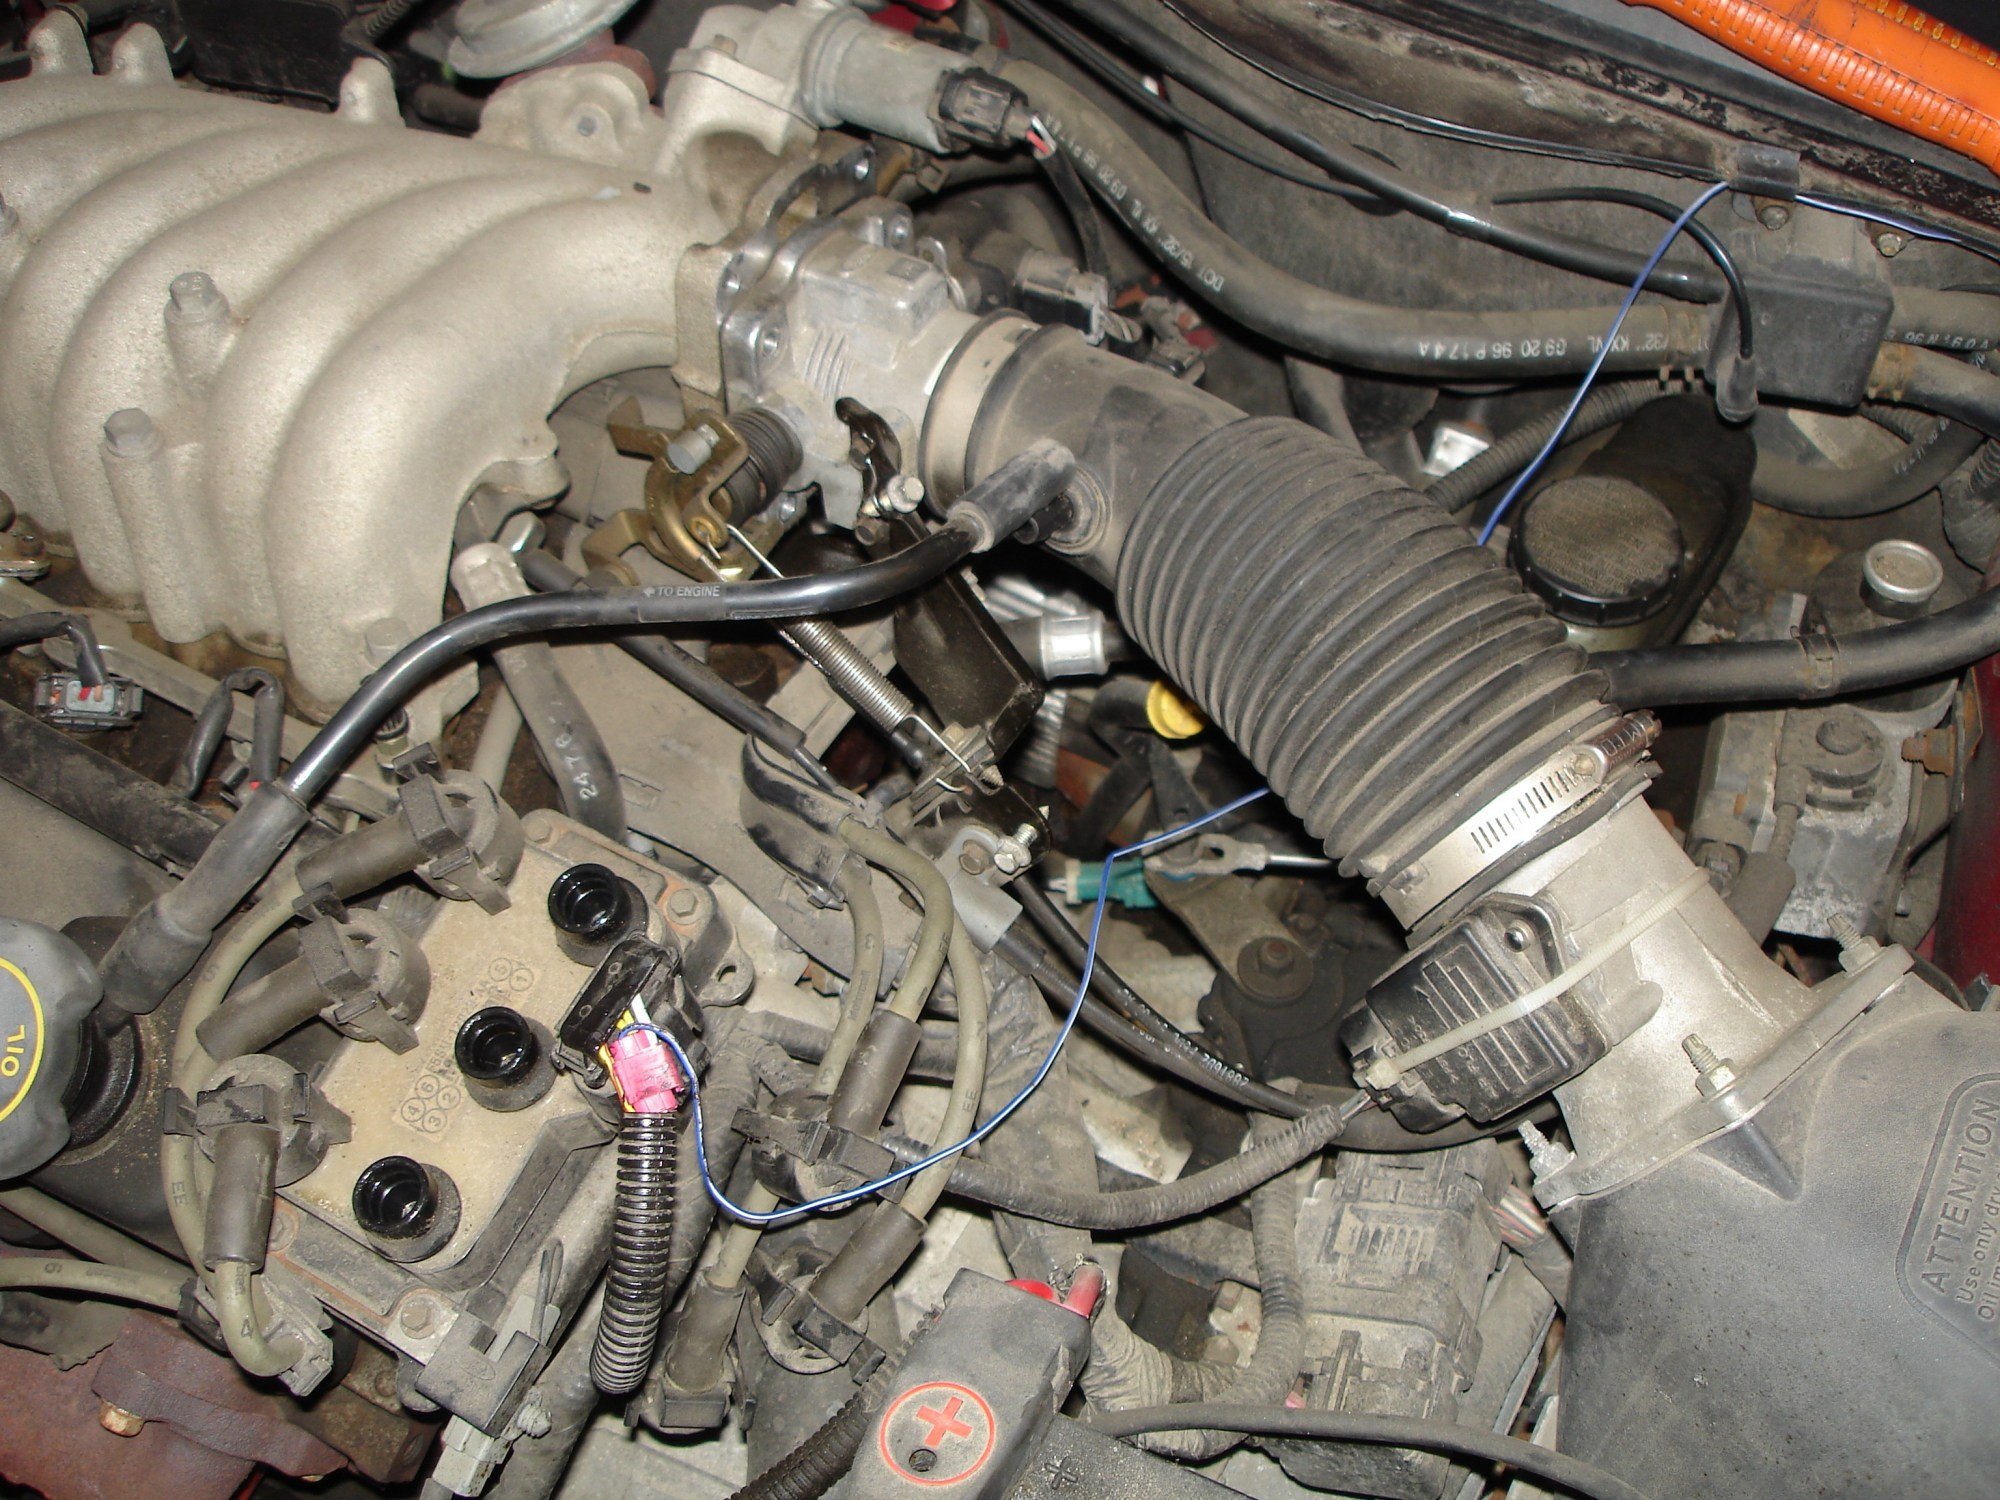 hight resolution of 2003 ford taurus engine hose diagram replace a camshaft position sensor 1997 ford taurus of 2003